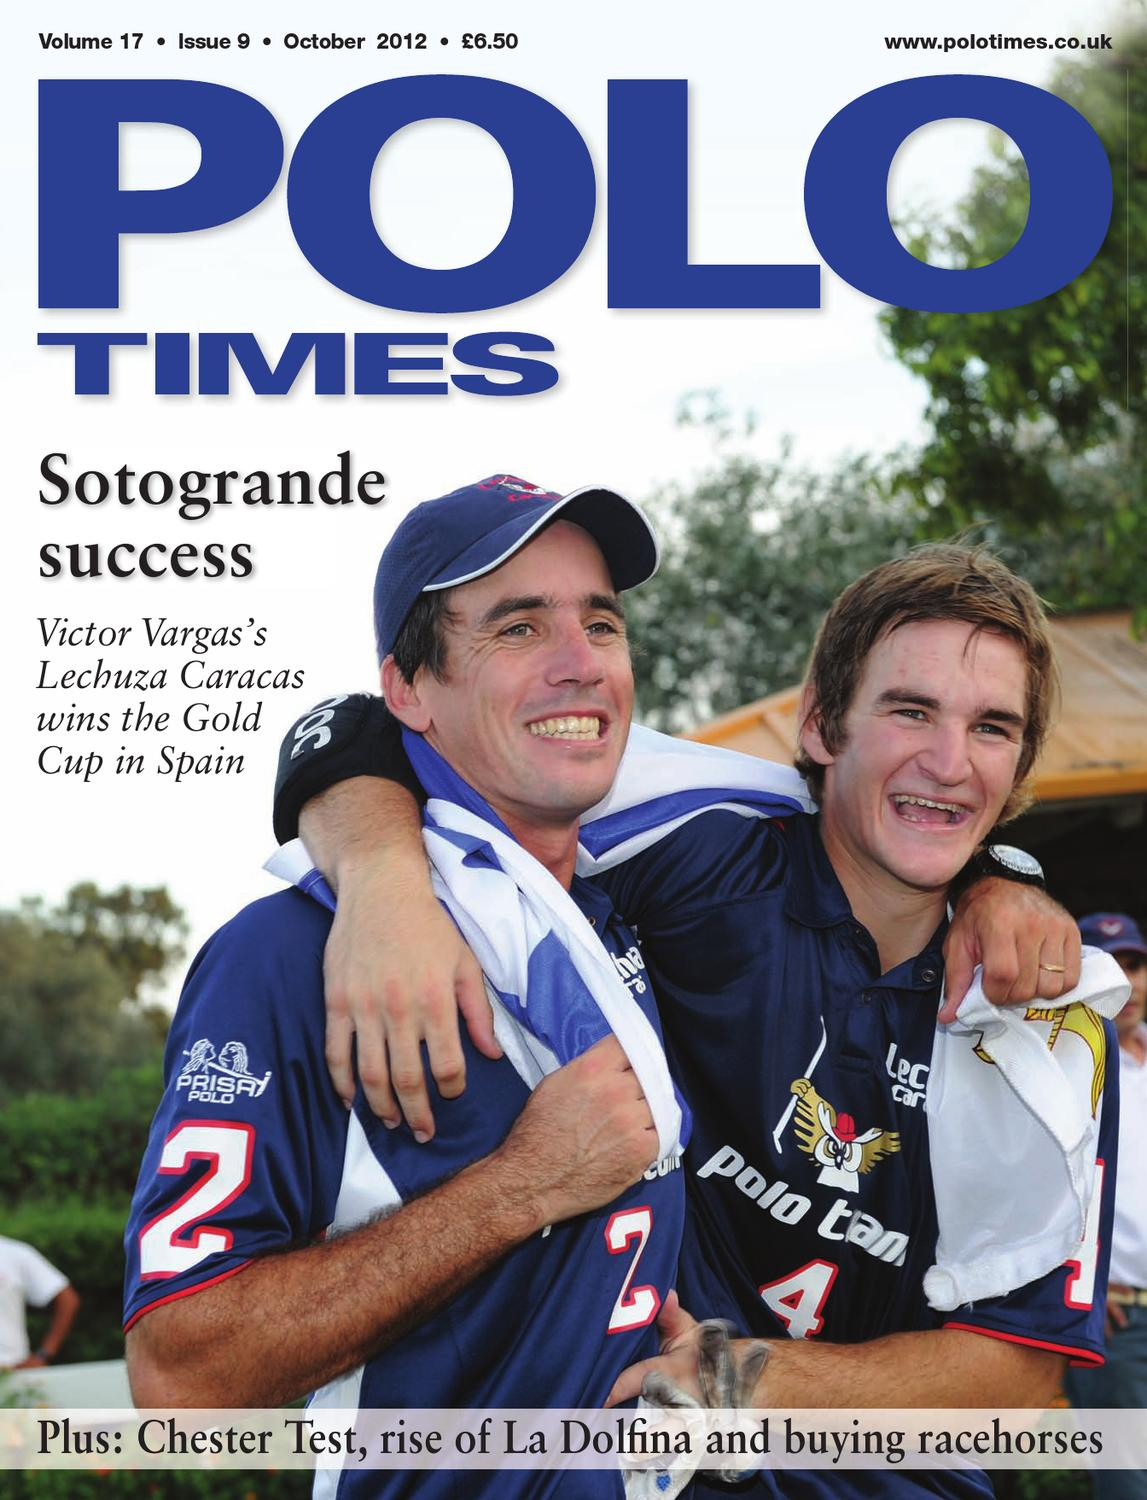 84a6dbb27027 Polo Times October 2012 by Edit - issuu